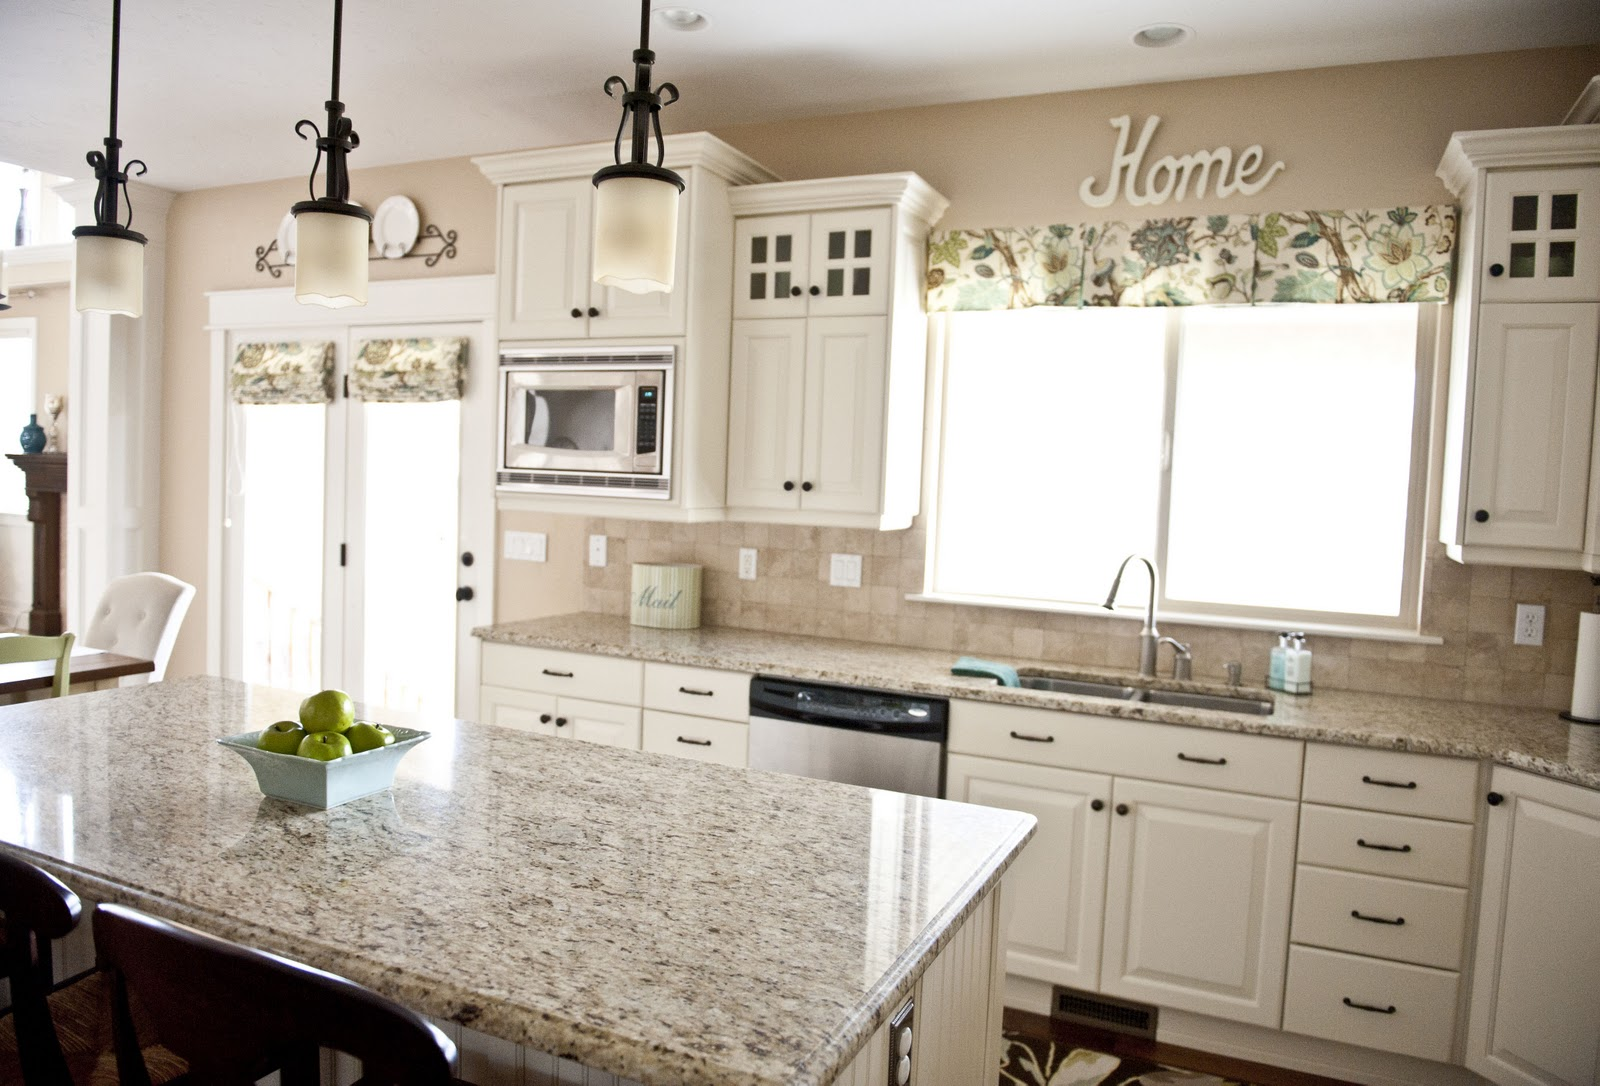 Sita Montgomery Interiors: My Home Tour: Kitchen